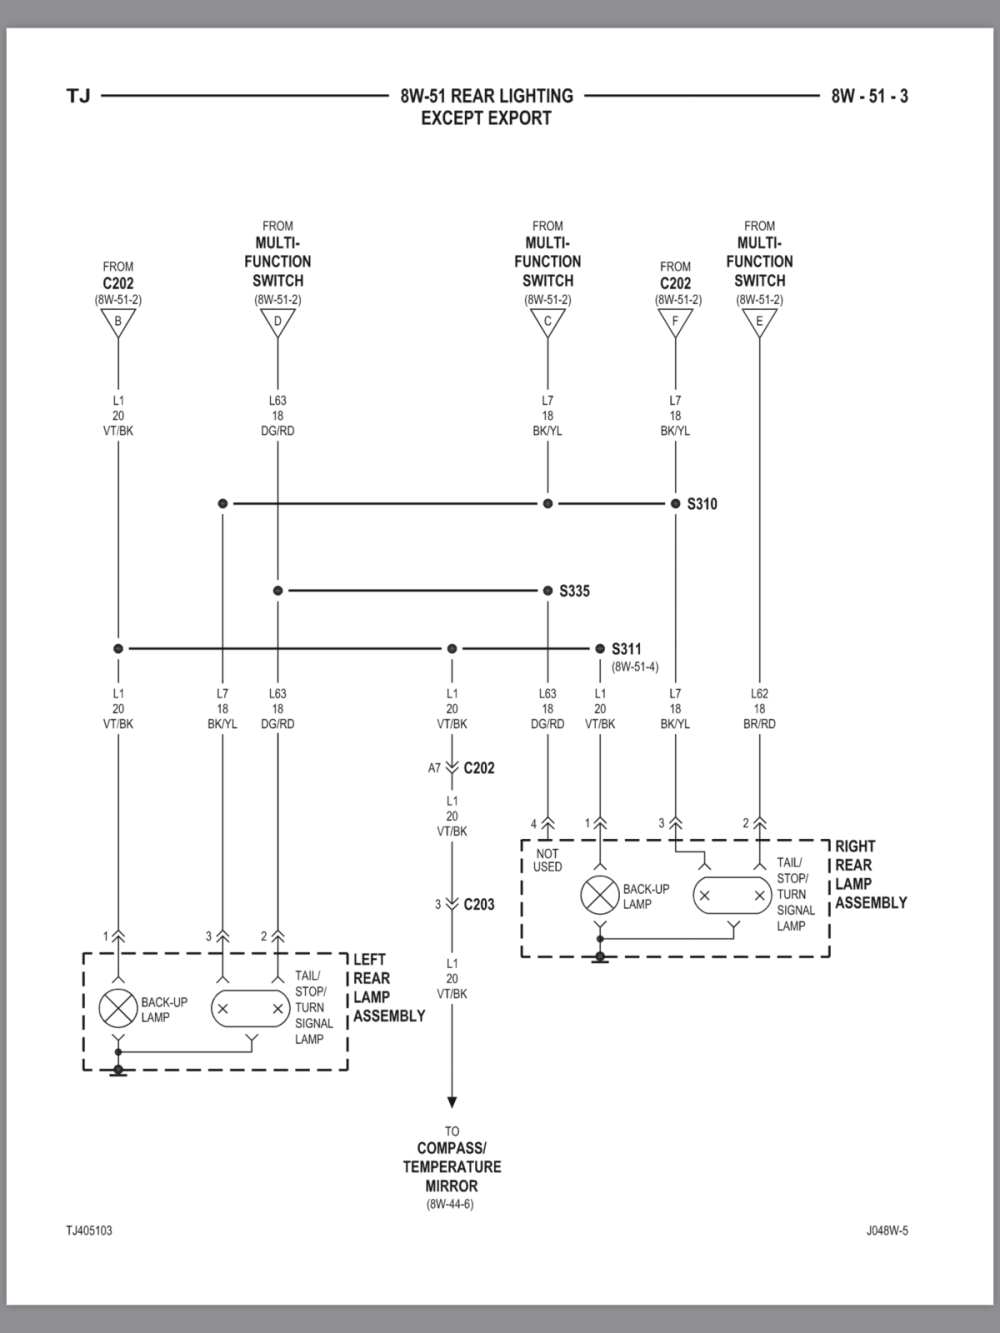 medium resolution of wiring guide or diagram jeep wrangler tj forum 1999 jeep wrangler wiring diagram 0541804e 18ef 45f6